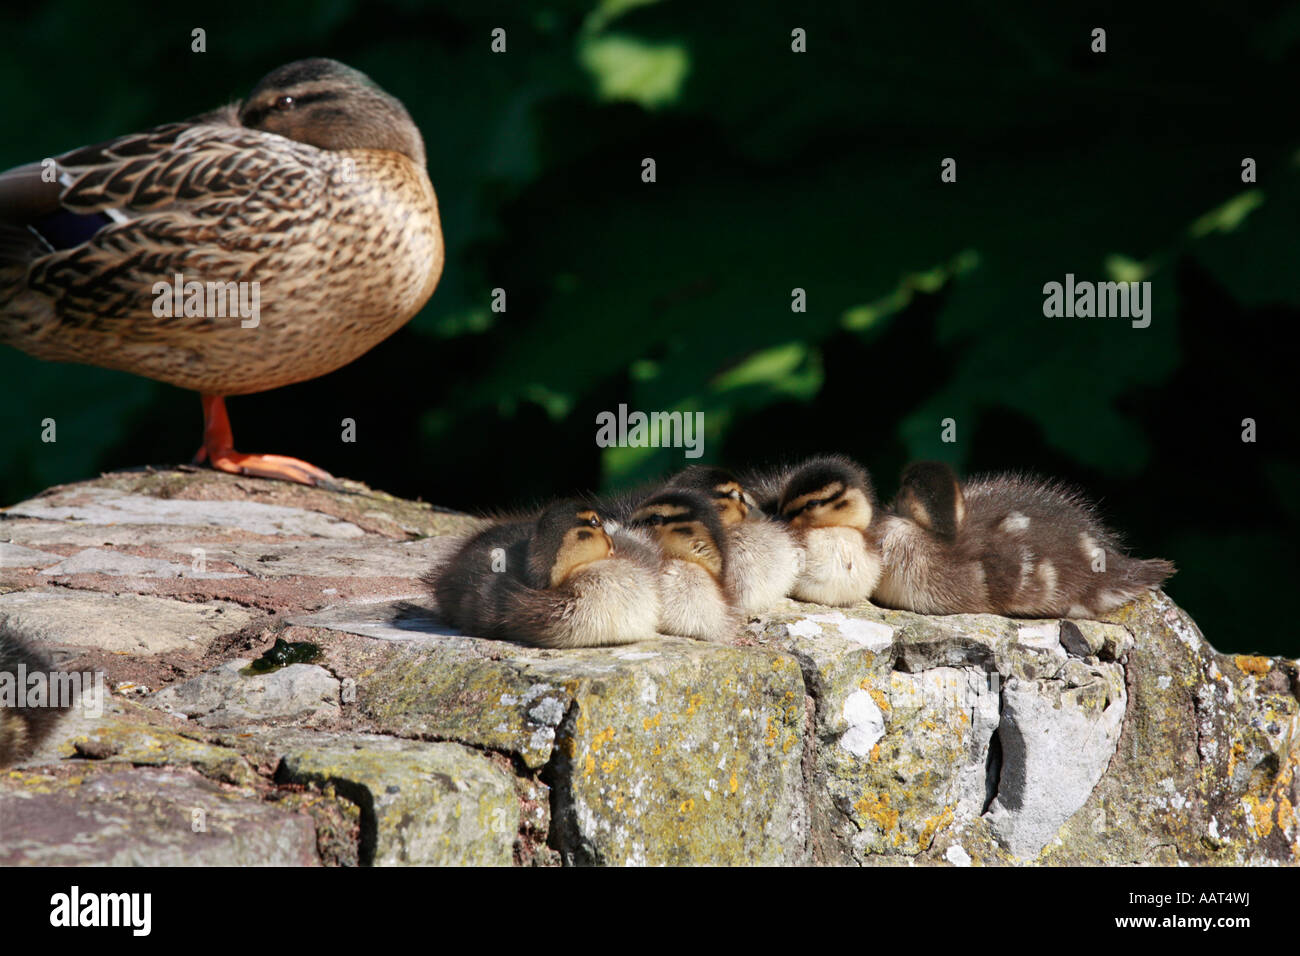 Nap time for baby Mallard ducklings with mother keeping an eye - Stock Image